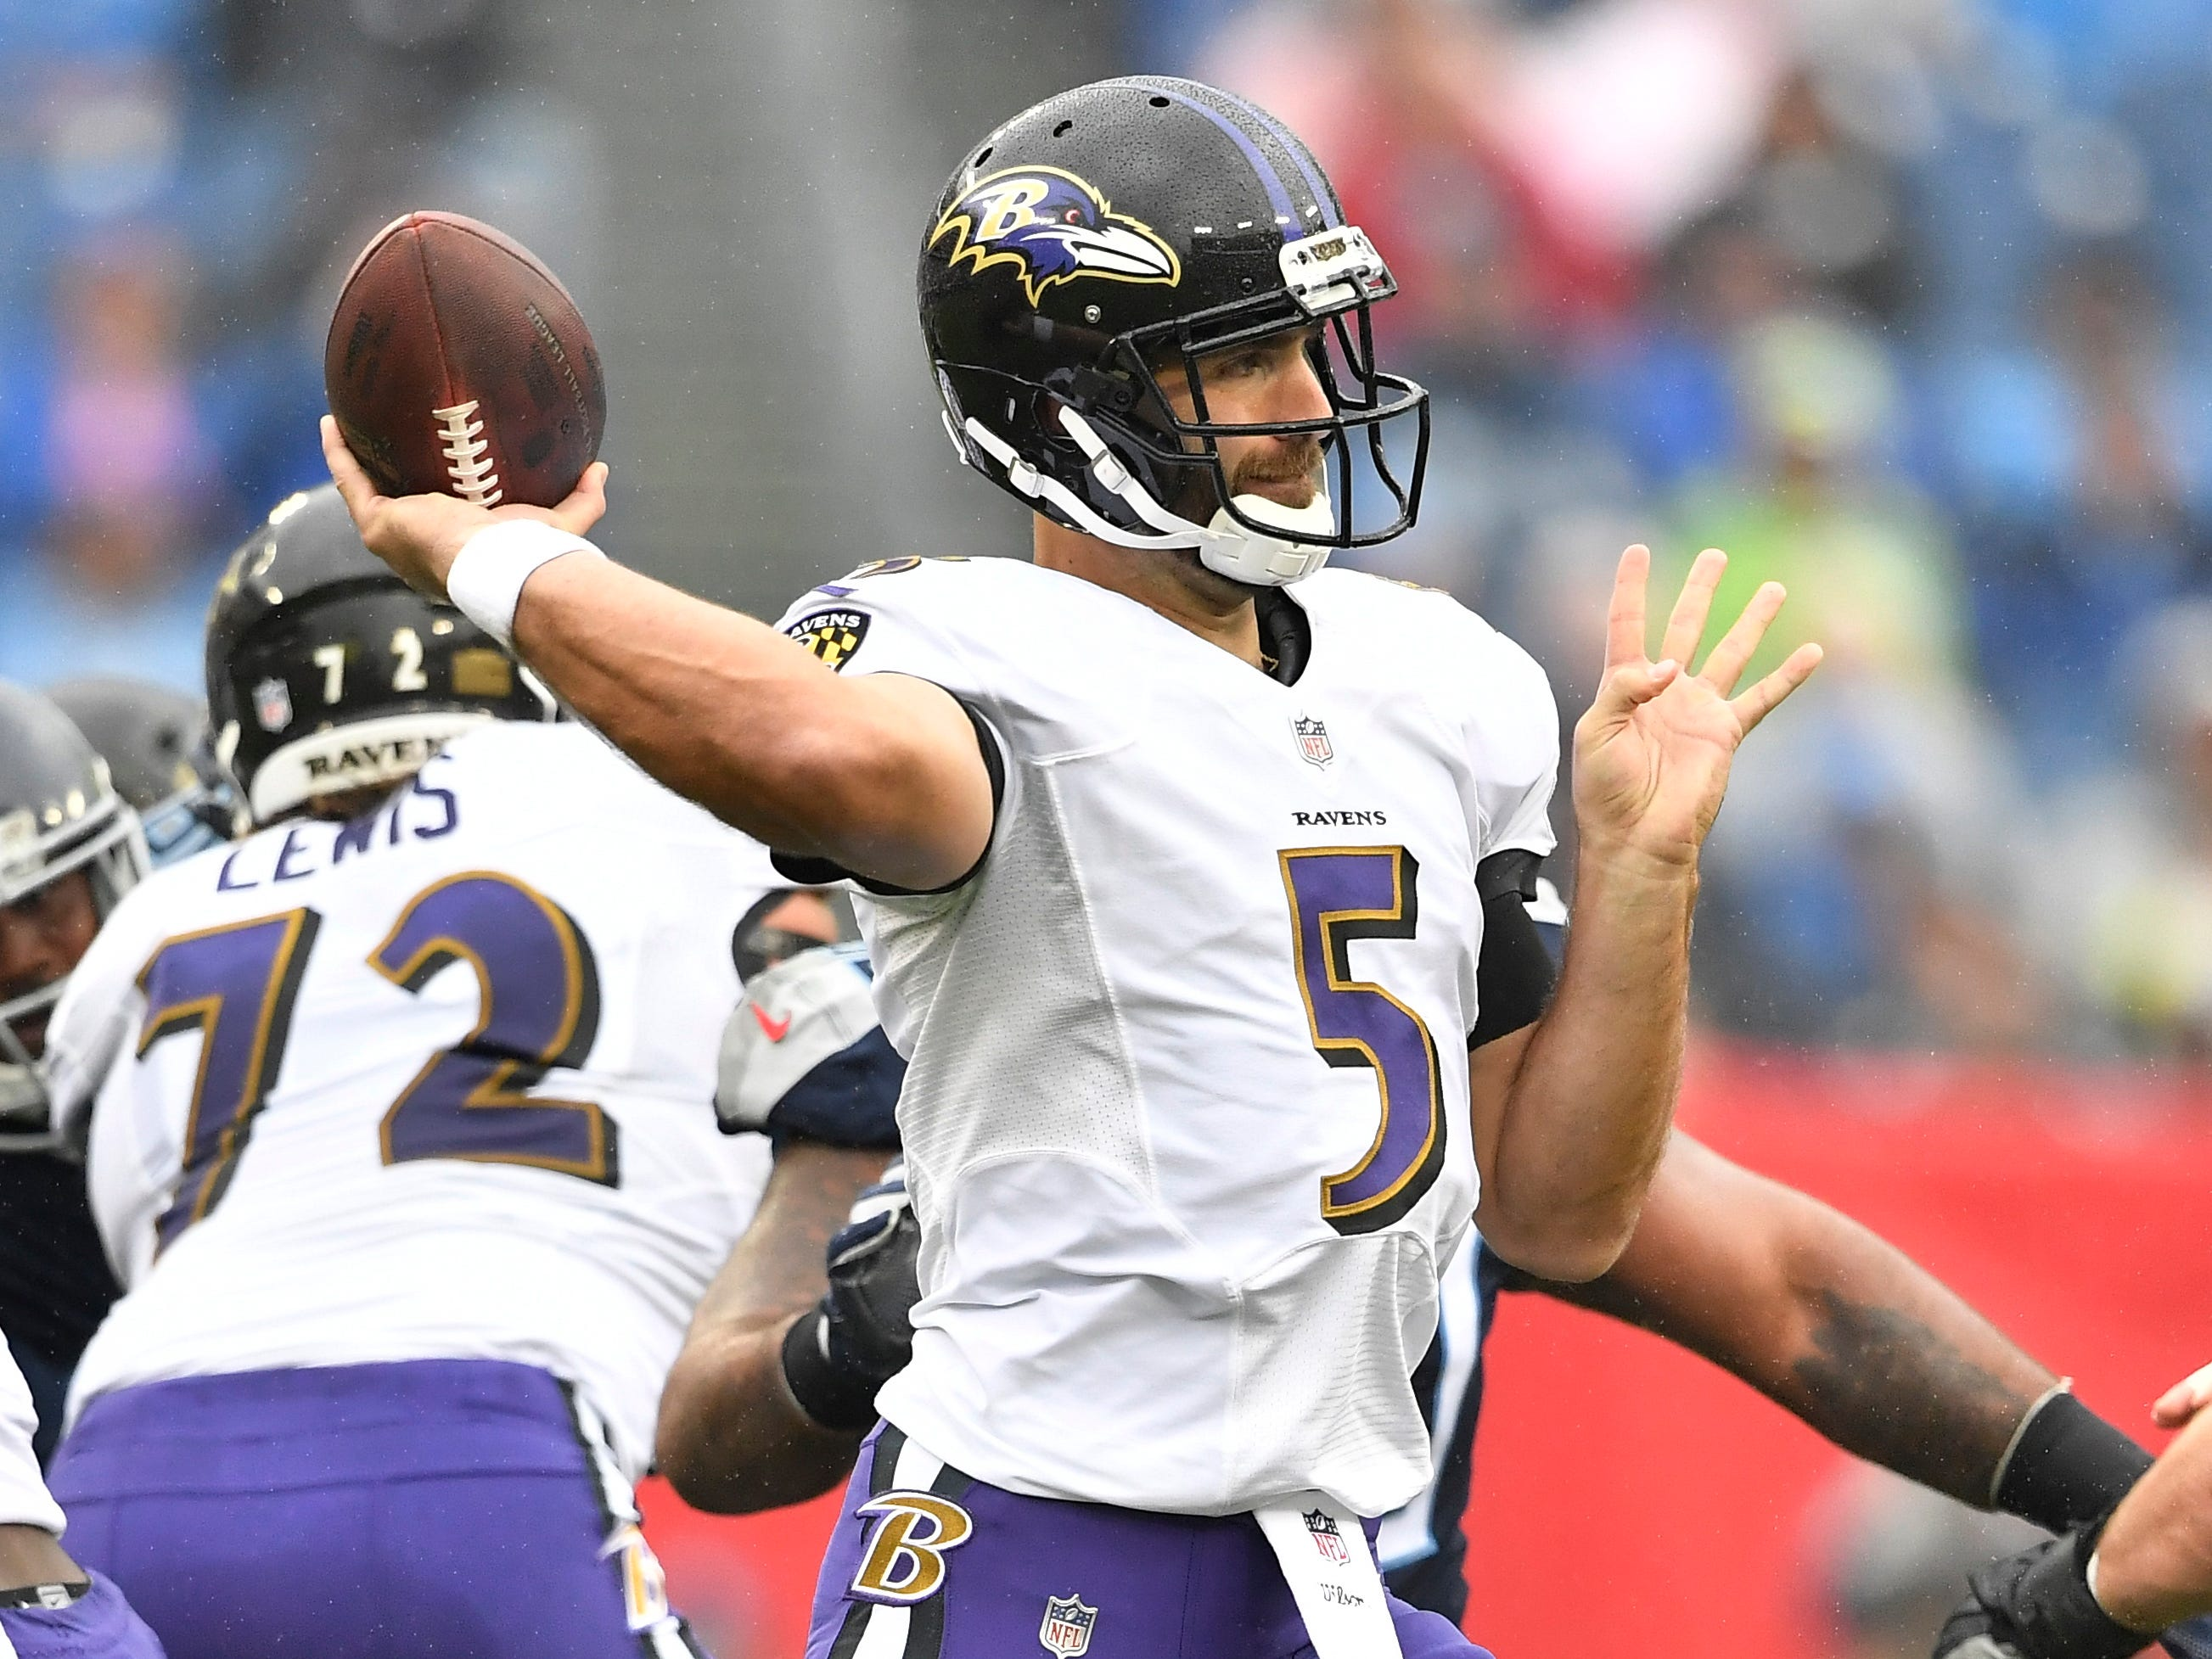 Ravens quarterback Joe Flacco (5) passes in the first quarter against the Titans at Nissan Stadium Sunday, Oct. 14, 2018, in Nashville, Tenn.